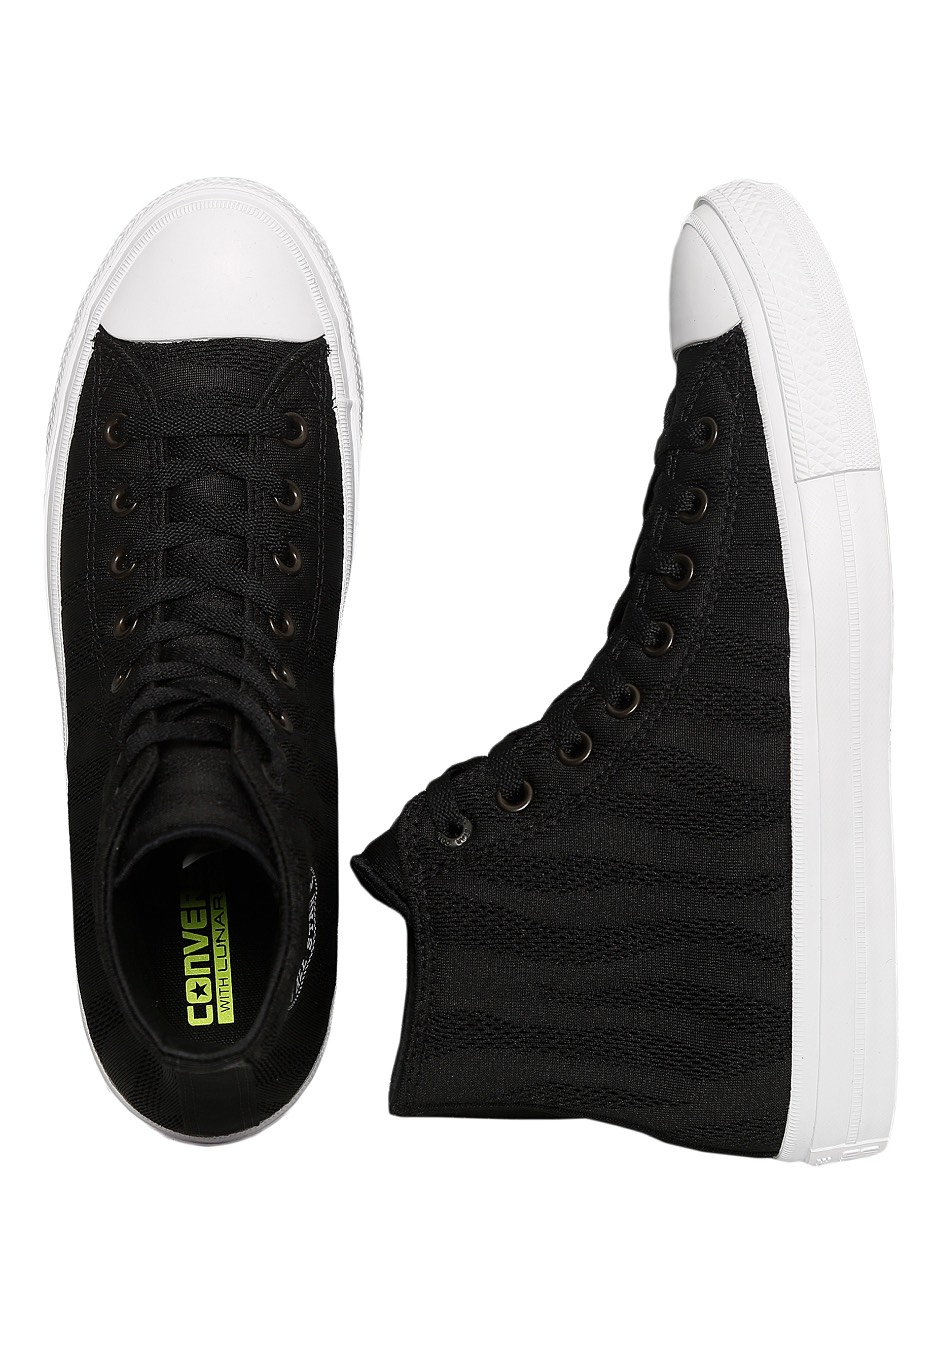 5351dbc73bc1 Converse - Chuck Taylor All Star II Hi Black White Gum - Shoes -  Impericon.com UK